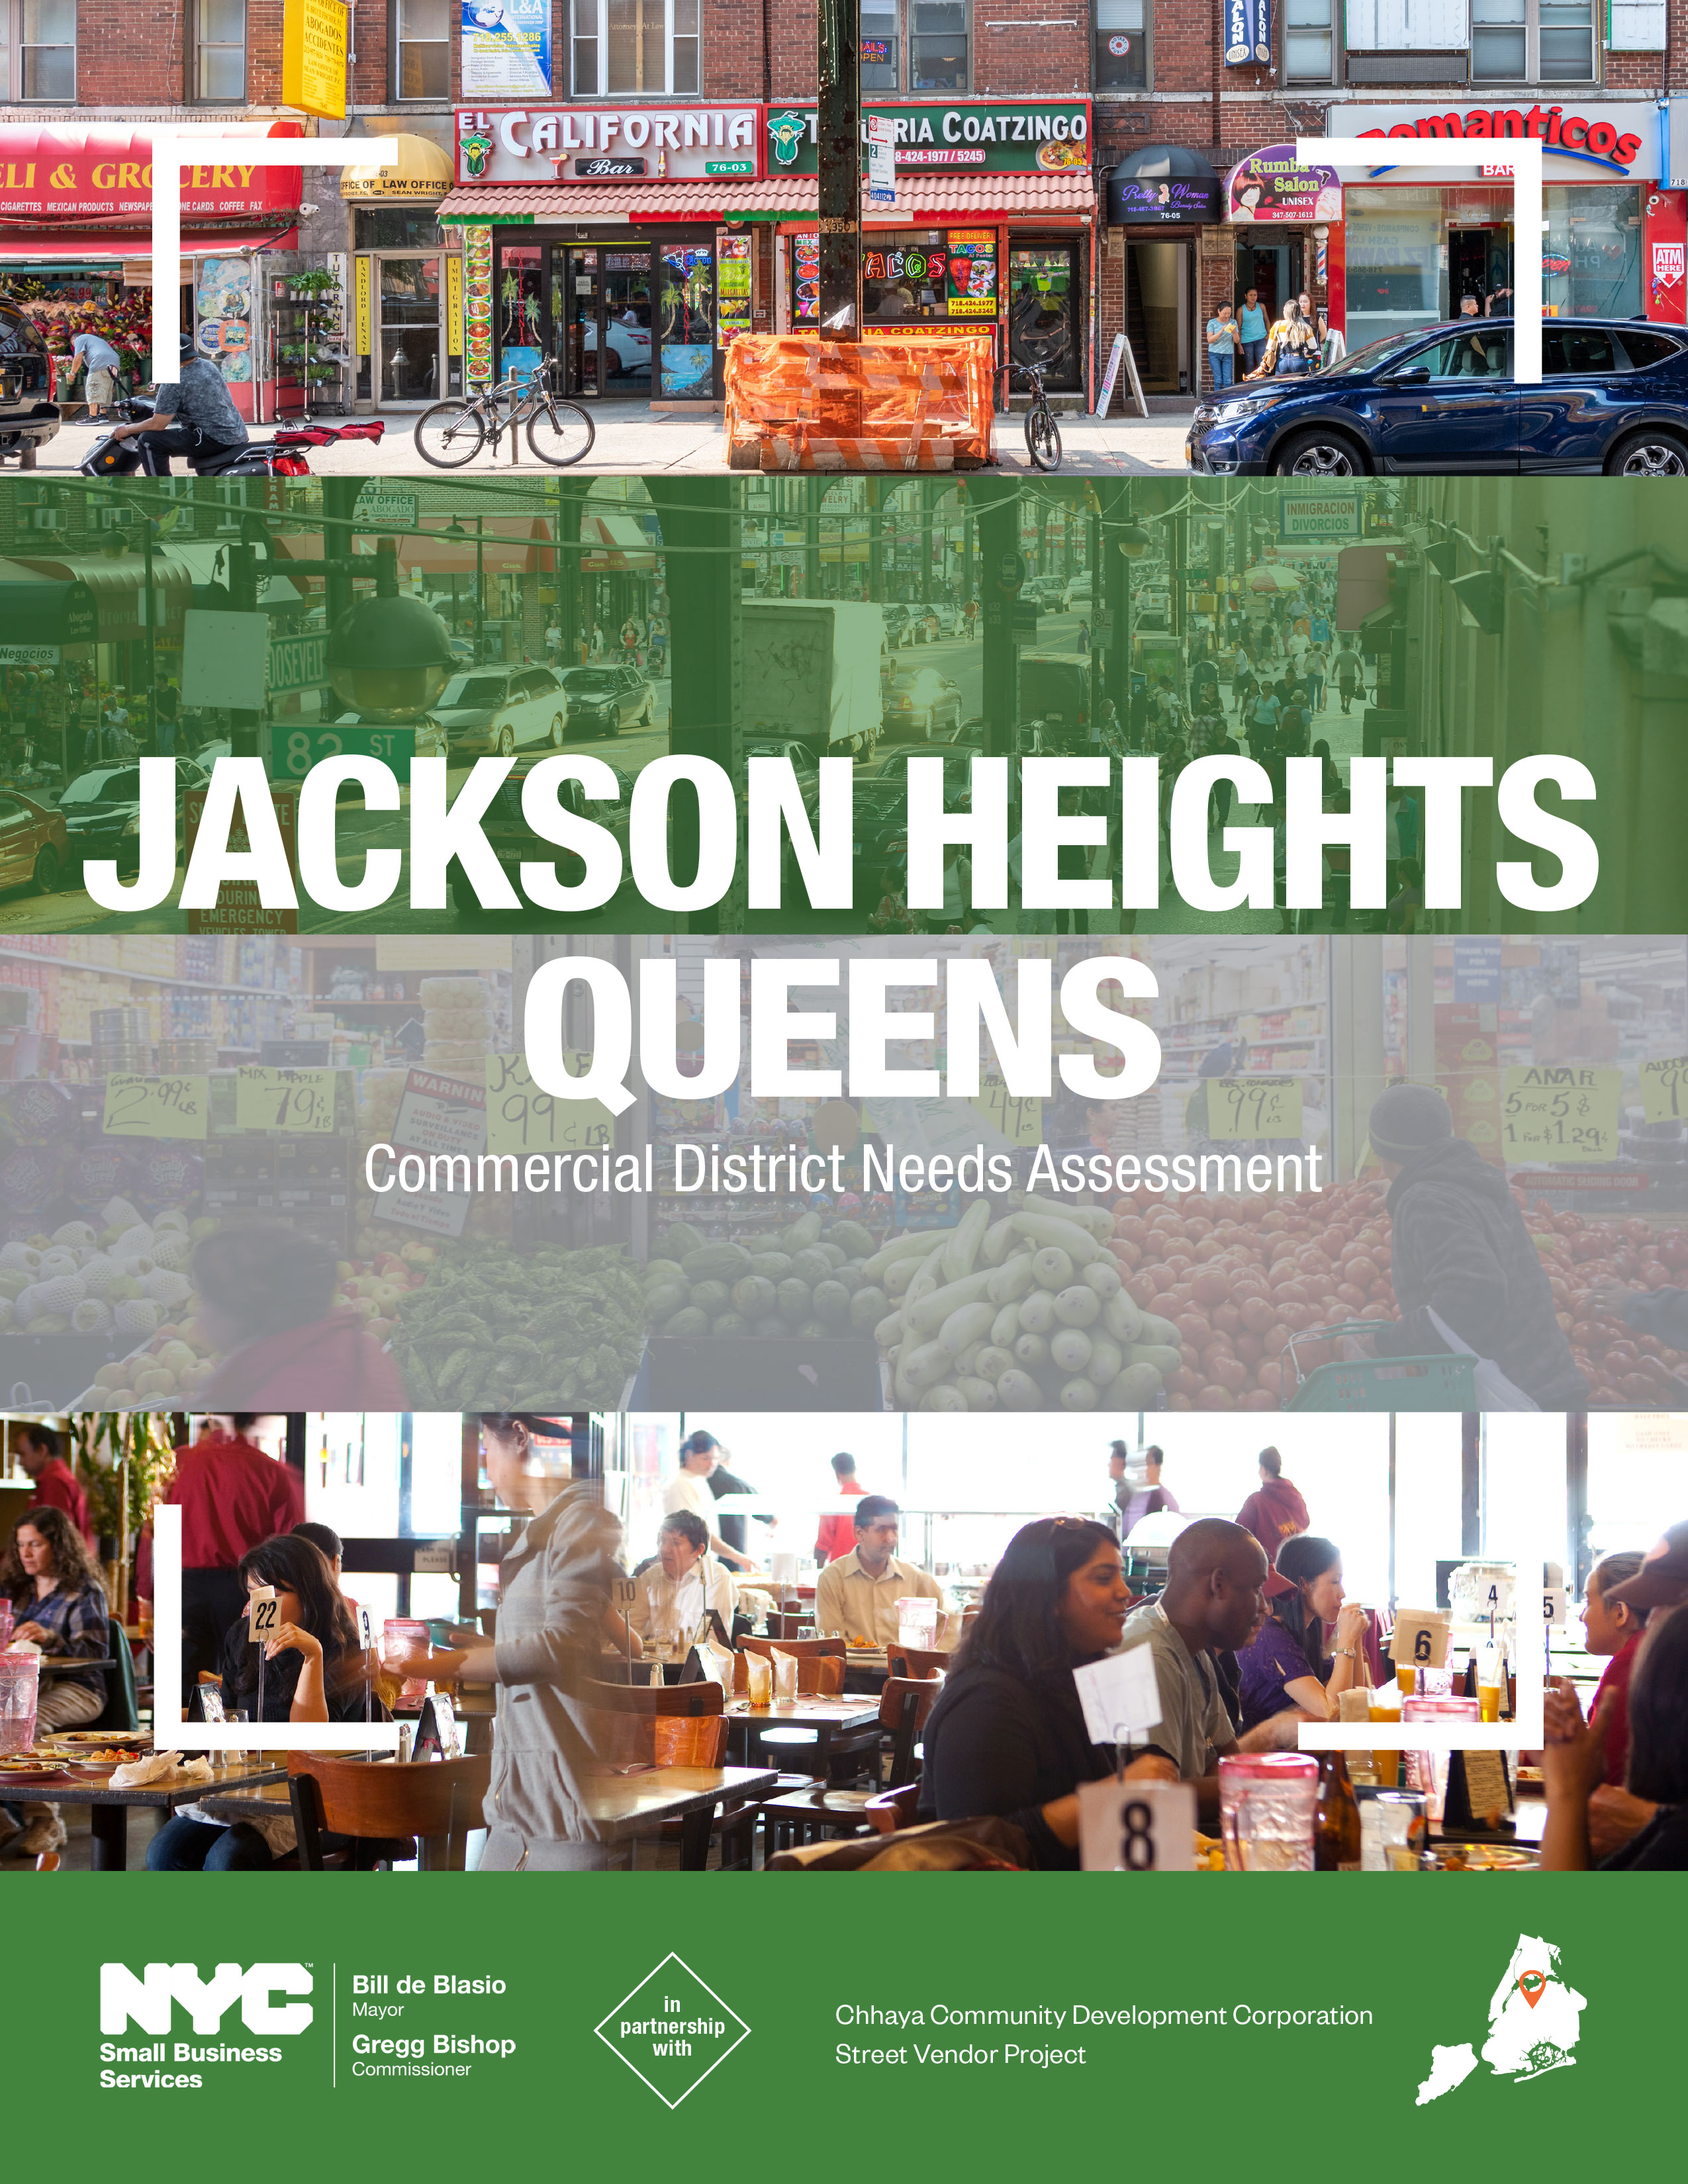 Jackson Heights Commercial District Needs Assessment